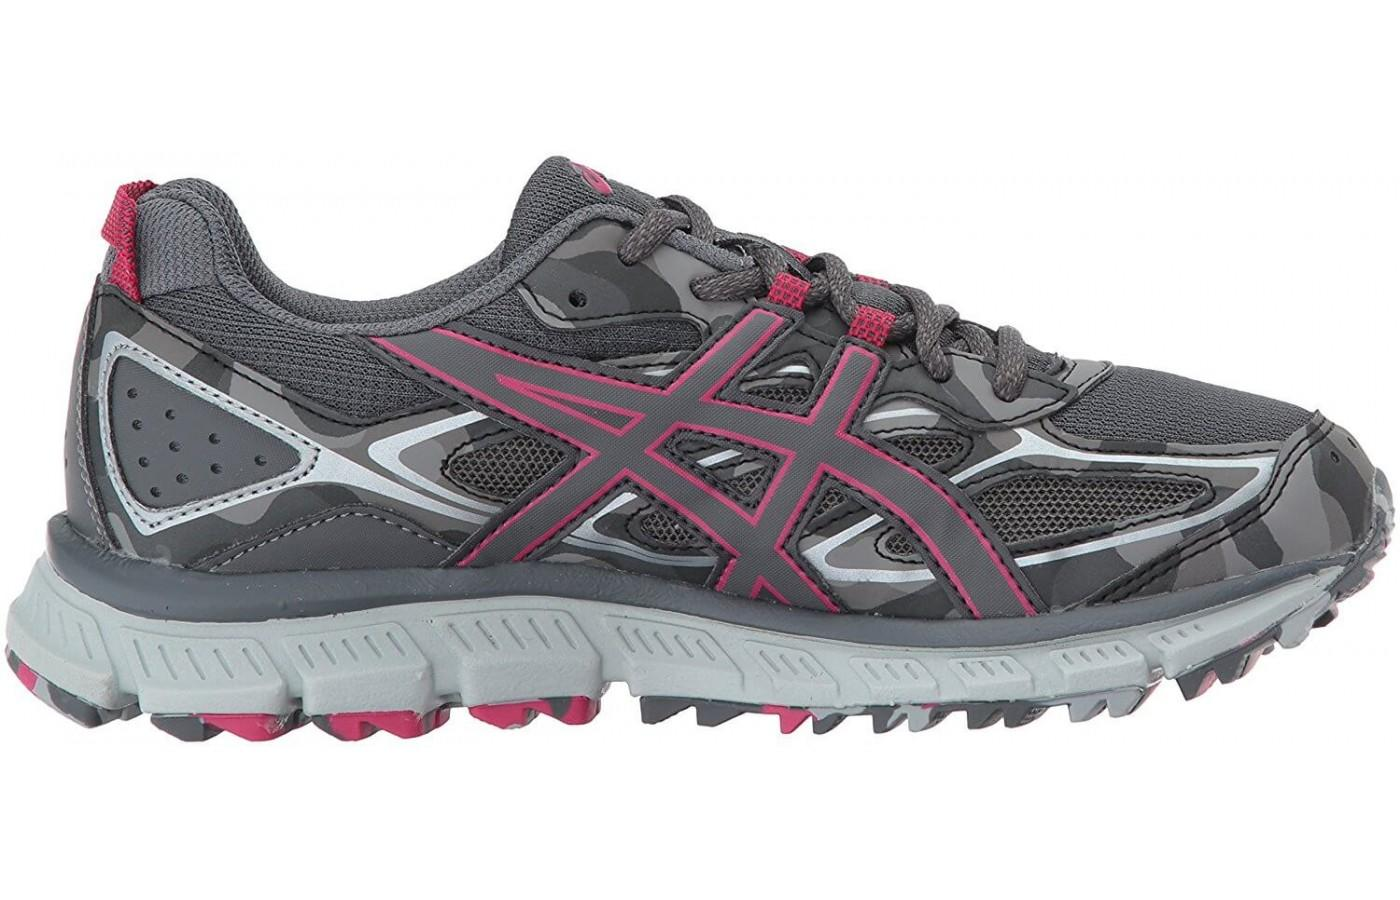 The synthetic overlays help keep the foot in place.